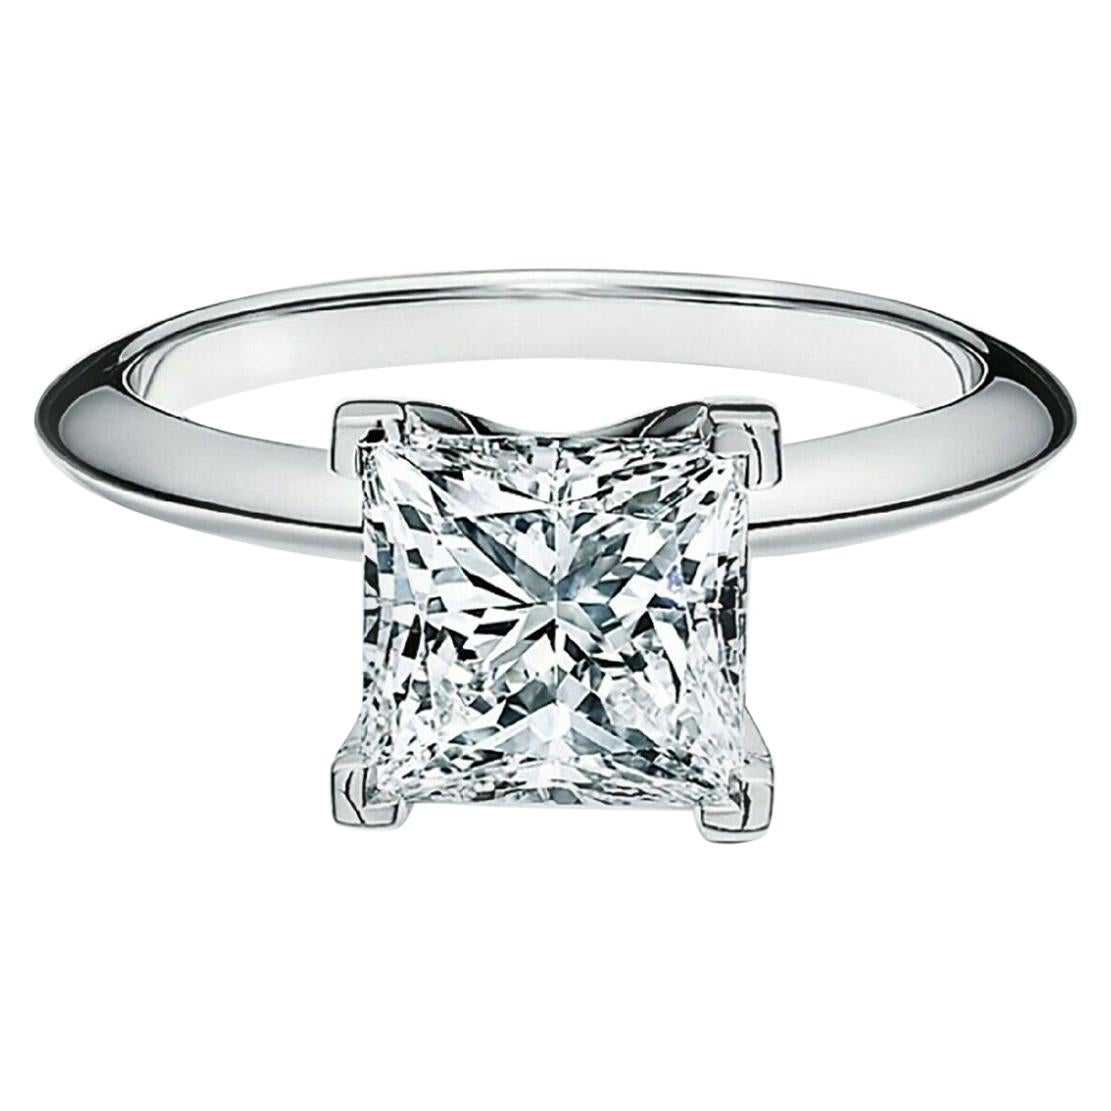 Tiffany & Co. Princess-Cut Diamond Engagement Ring in Platinum with Certificate